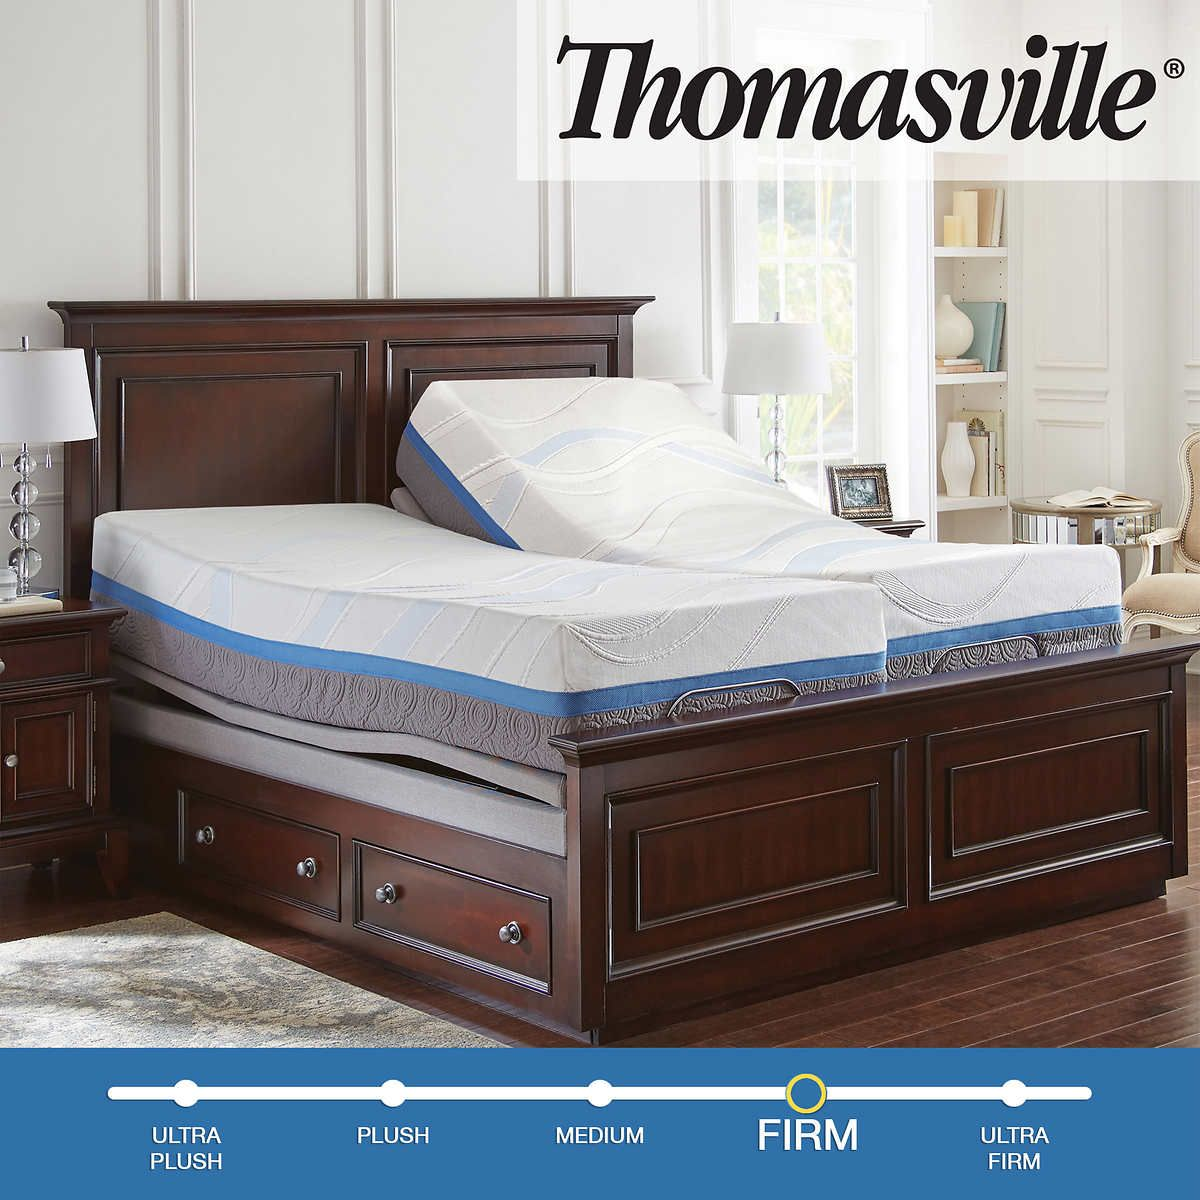 "Thomasville Precision Gel 14"" Memory Foam Split CalKing"